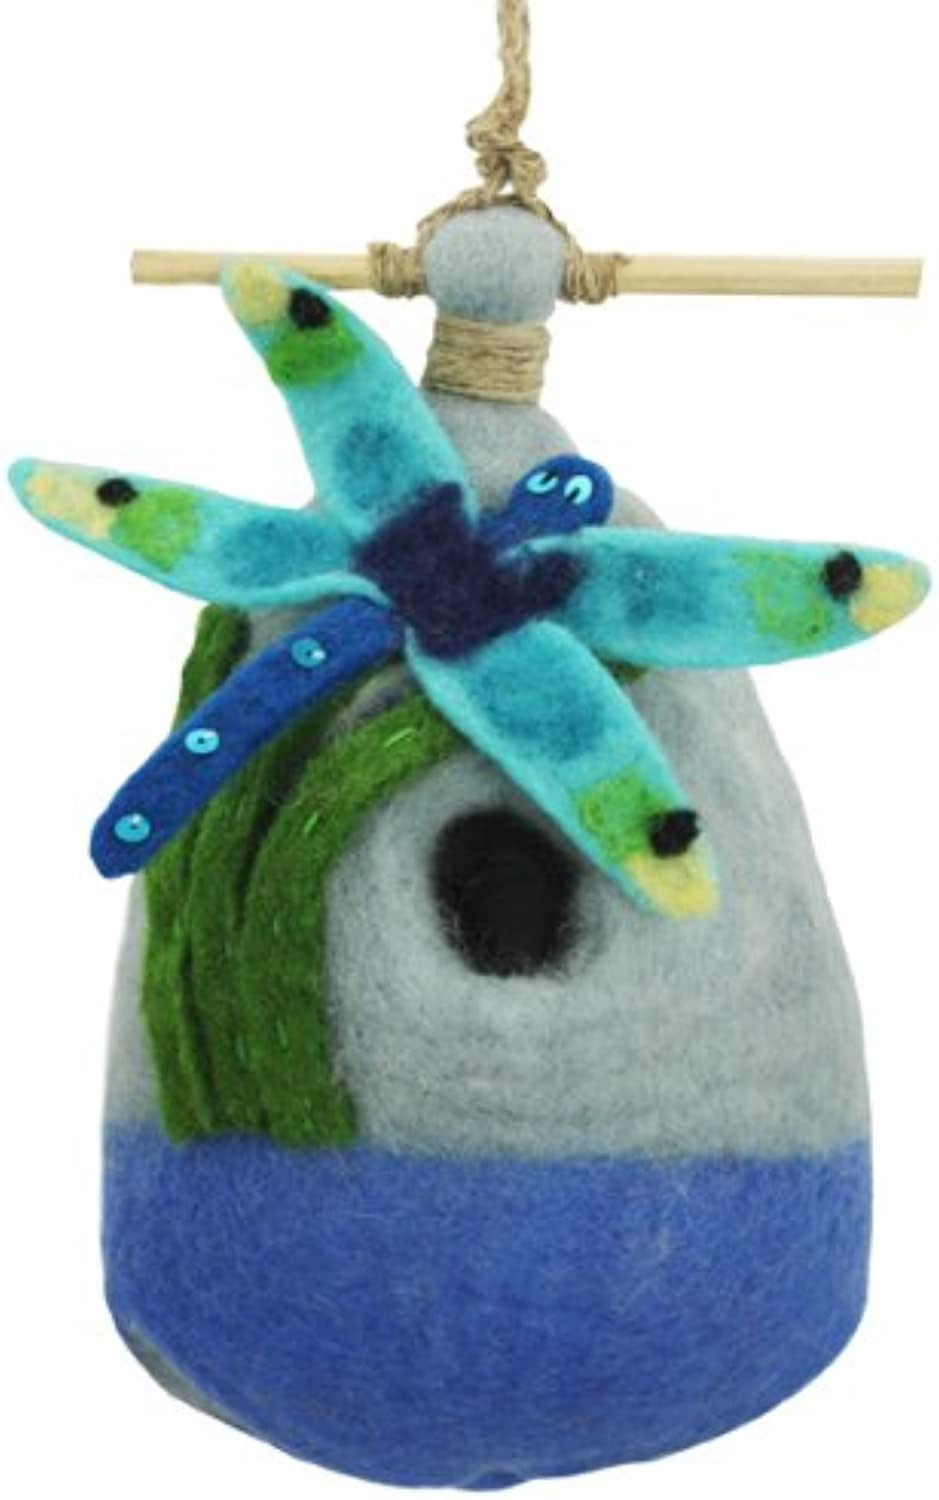 Big Dragonfly Felt Birdhouse [Kitchen & Home]